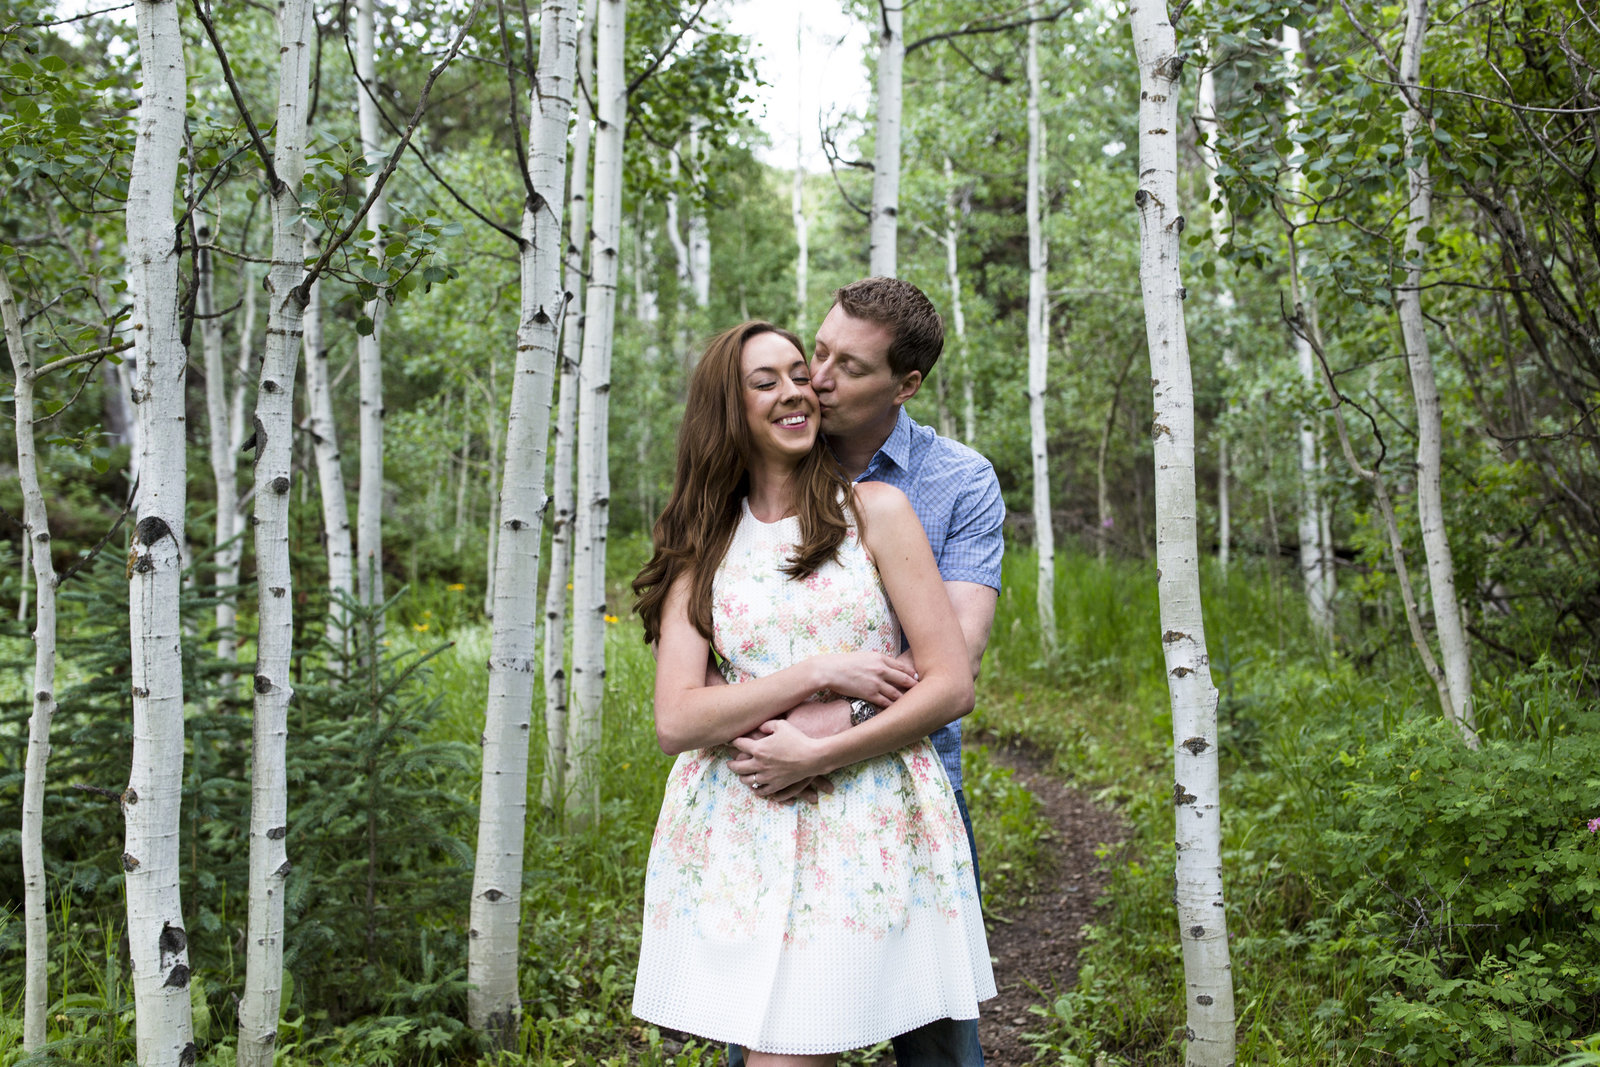 Jessi-And-Zach-Photography-Colorado-Wedding-Photographer-Nevada-Wedding-Photographer-Nevada-Engagement-Photographer_14